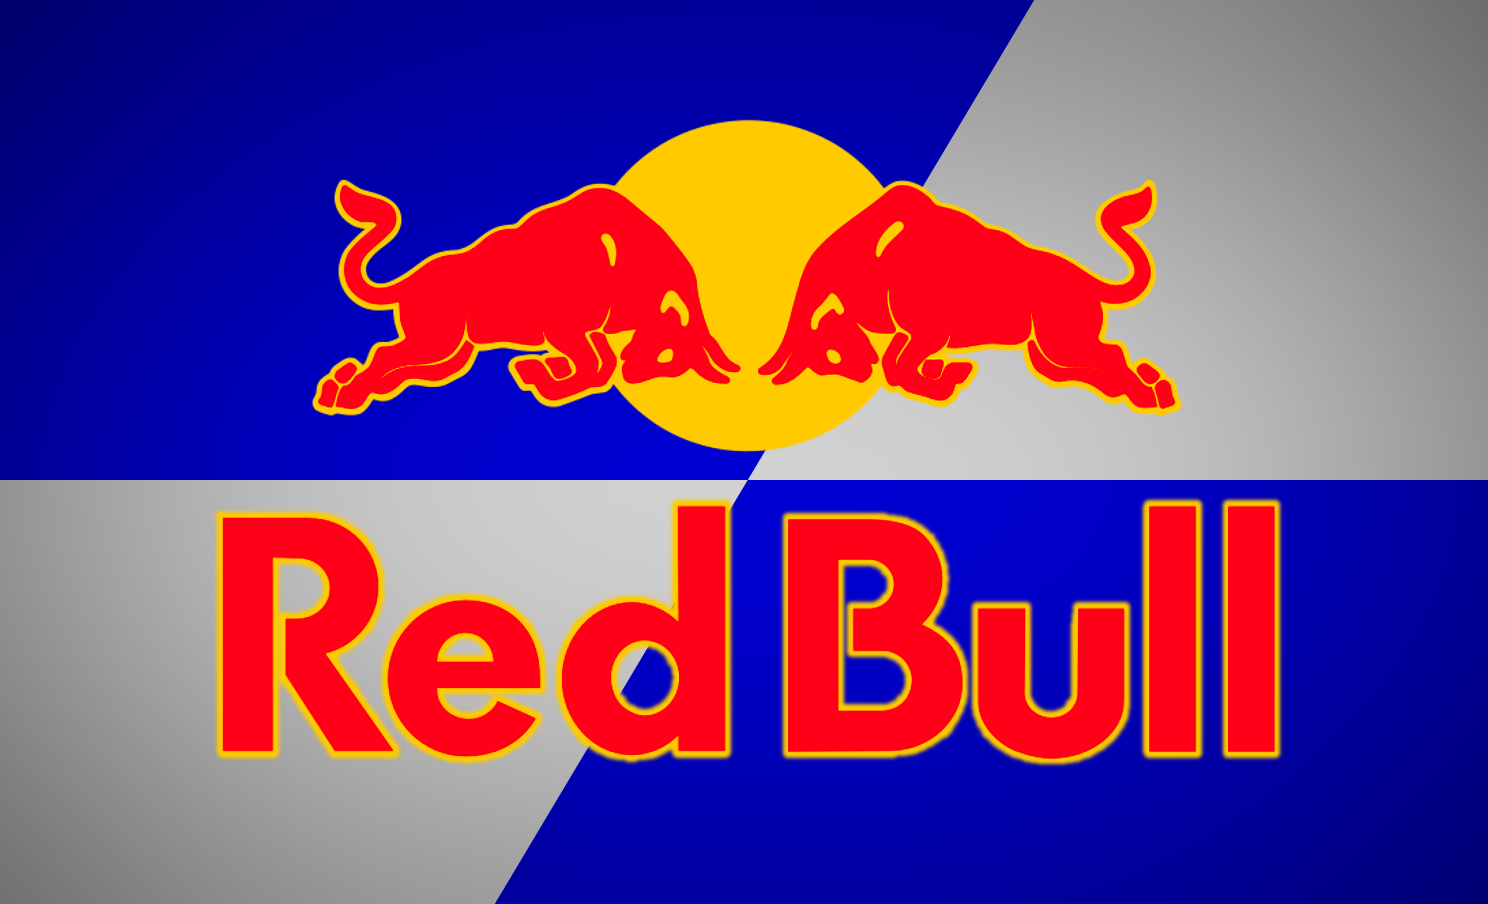 dose red bull